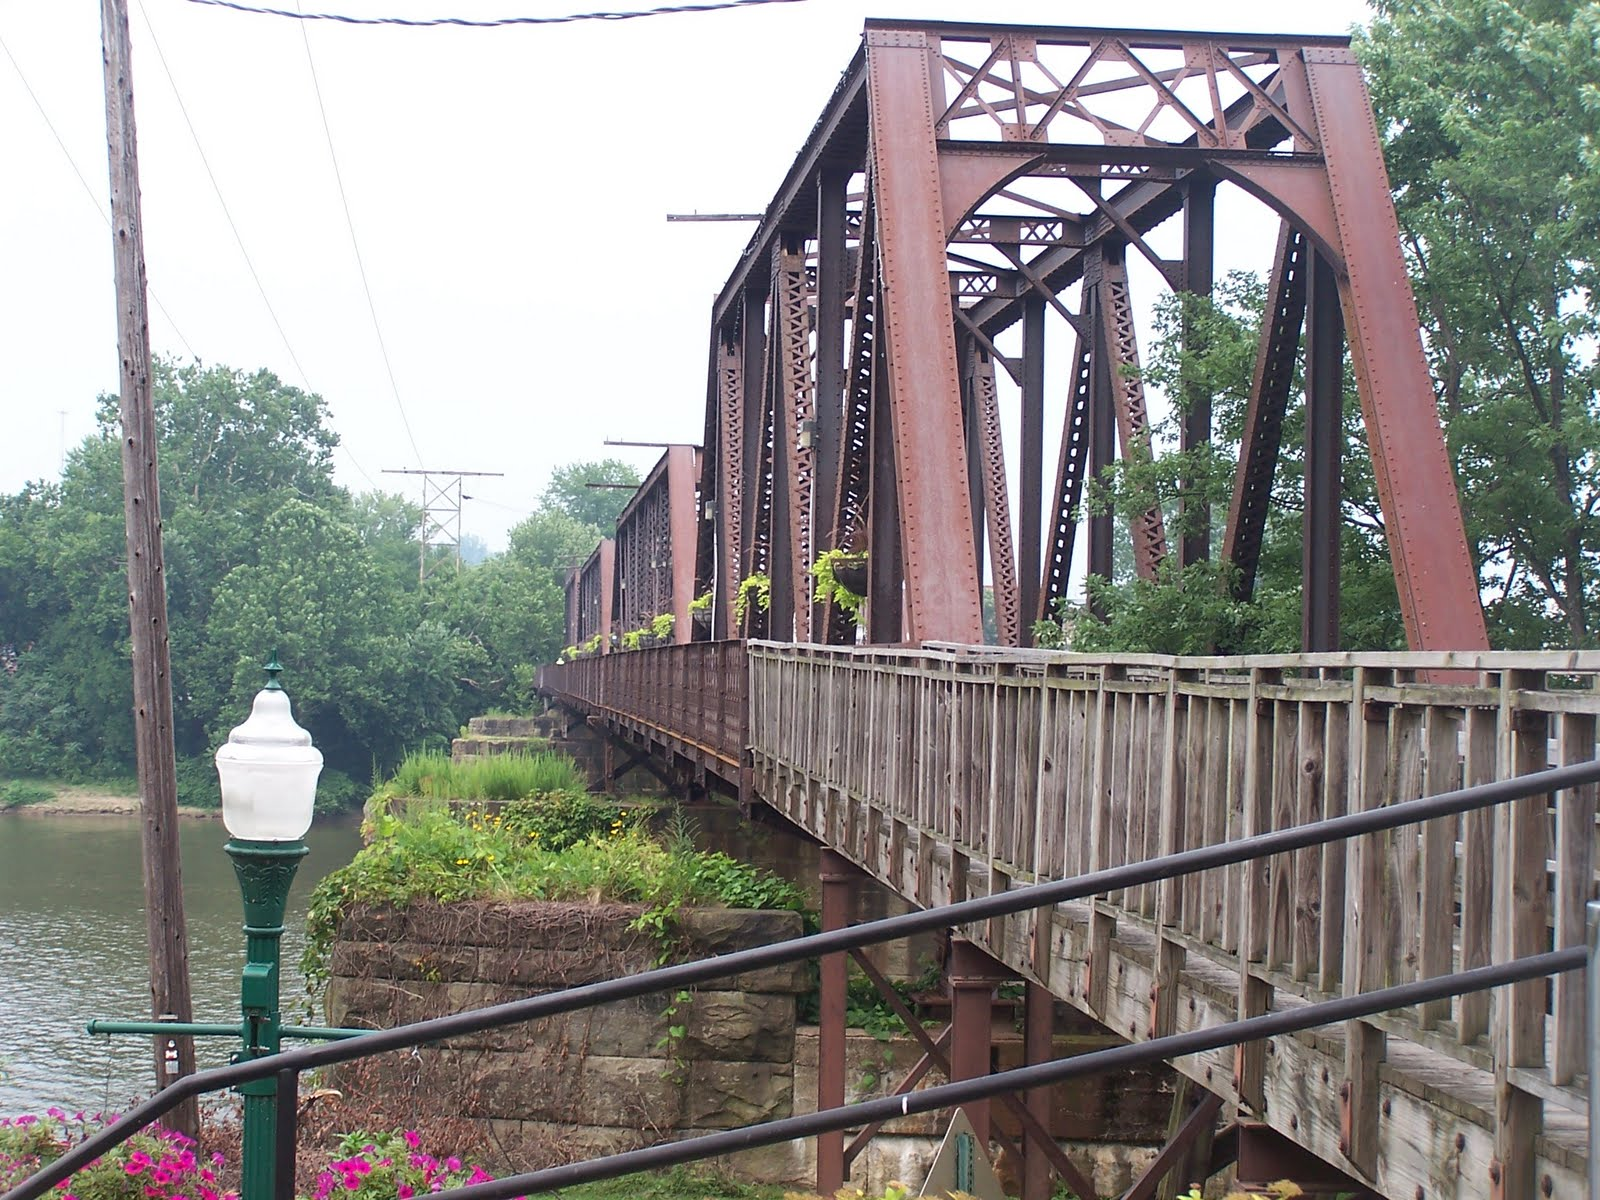 The Harmar Railroad Bridge today.